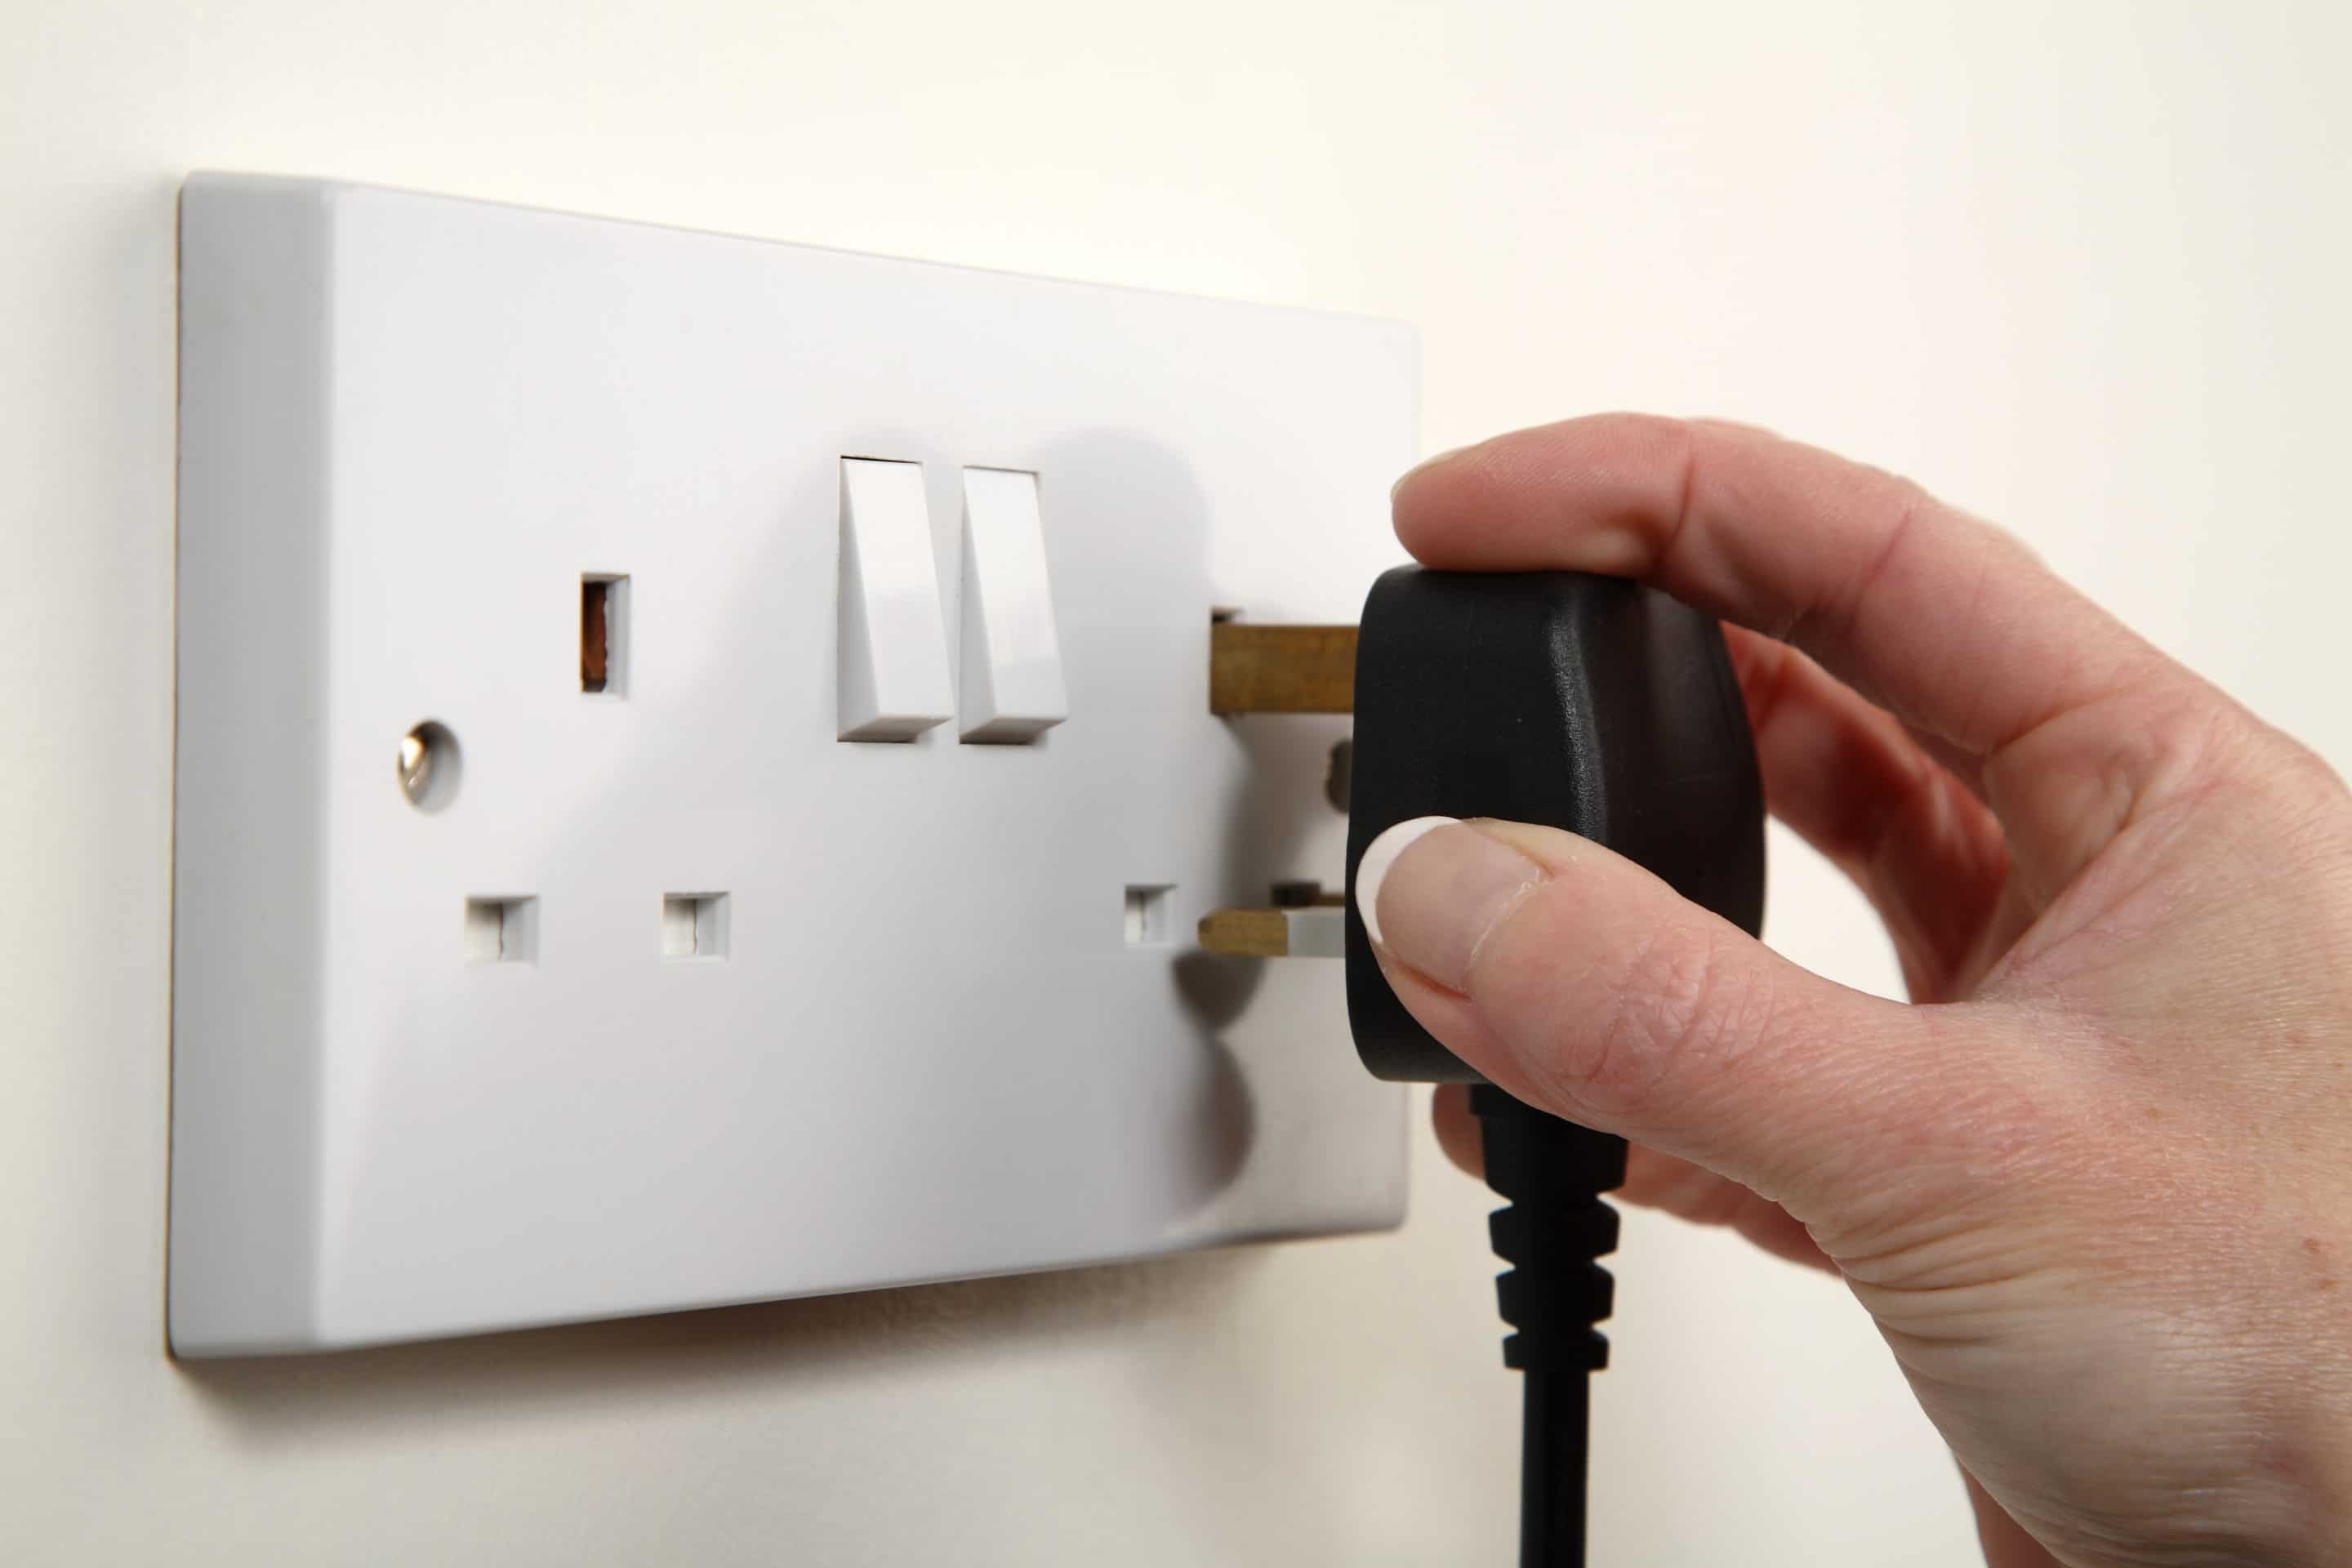 Electrician Portishead Clevedon Nailsea Bristol 01275 848955 House Wiring Job Description We At Port Marine Are Experts Handling Any Size Of Re Both First And Second Fix Quickly Efficiently An Affordable Price